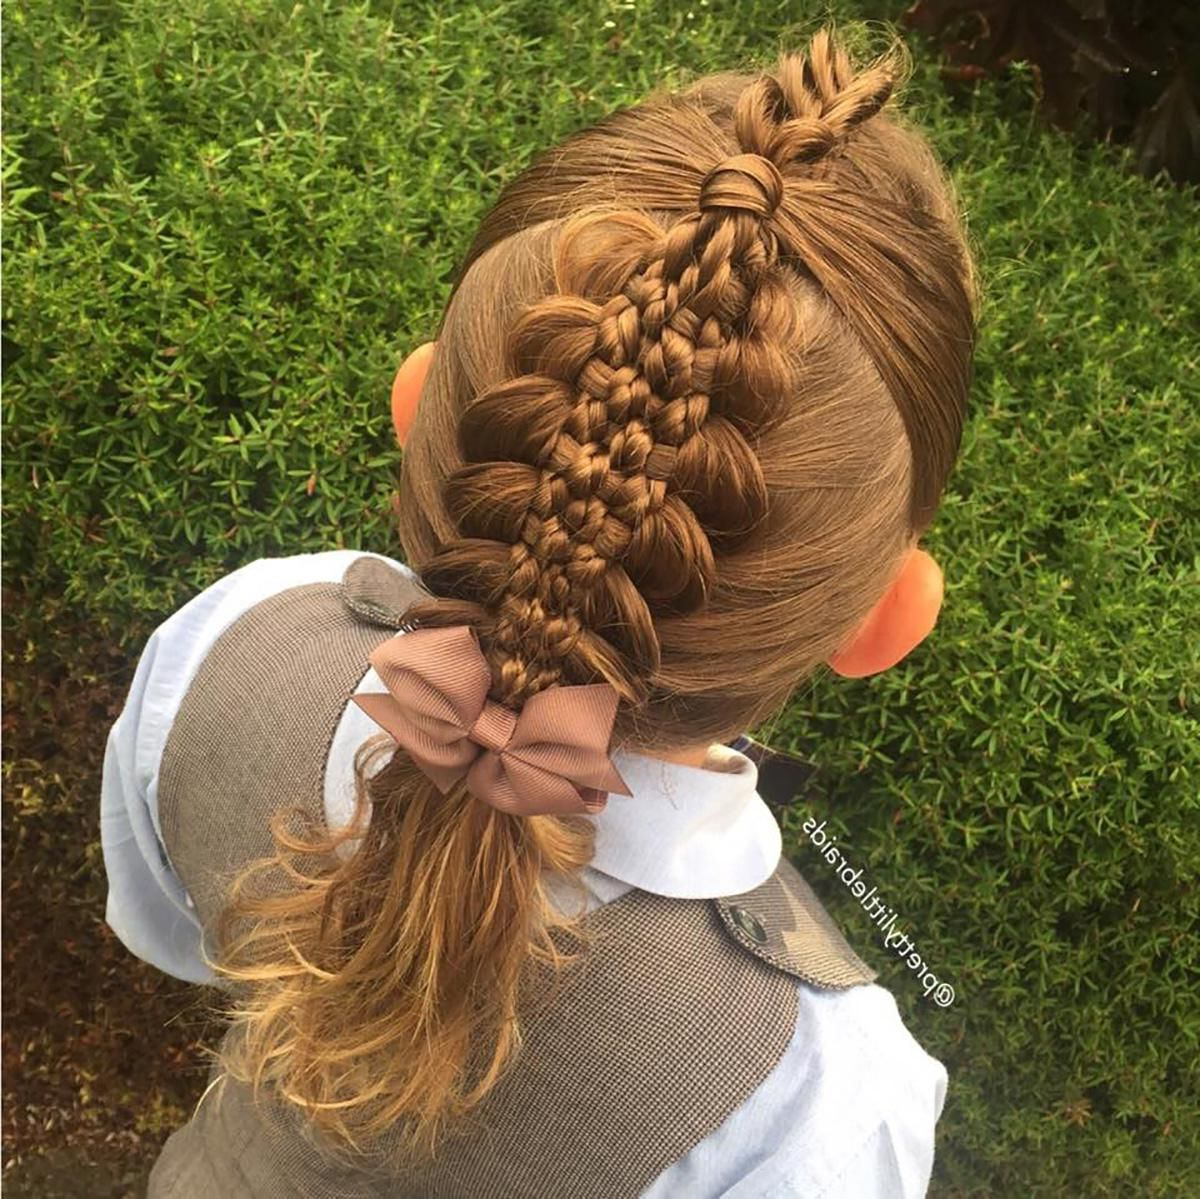 Versatile Braid Styles For Girls That Moms Must Try On Their Intended For Most Up To Date Loose Spiral Braid Hairstyles (Gallery 3 of 20)